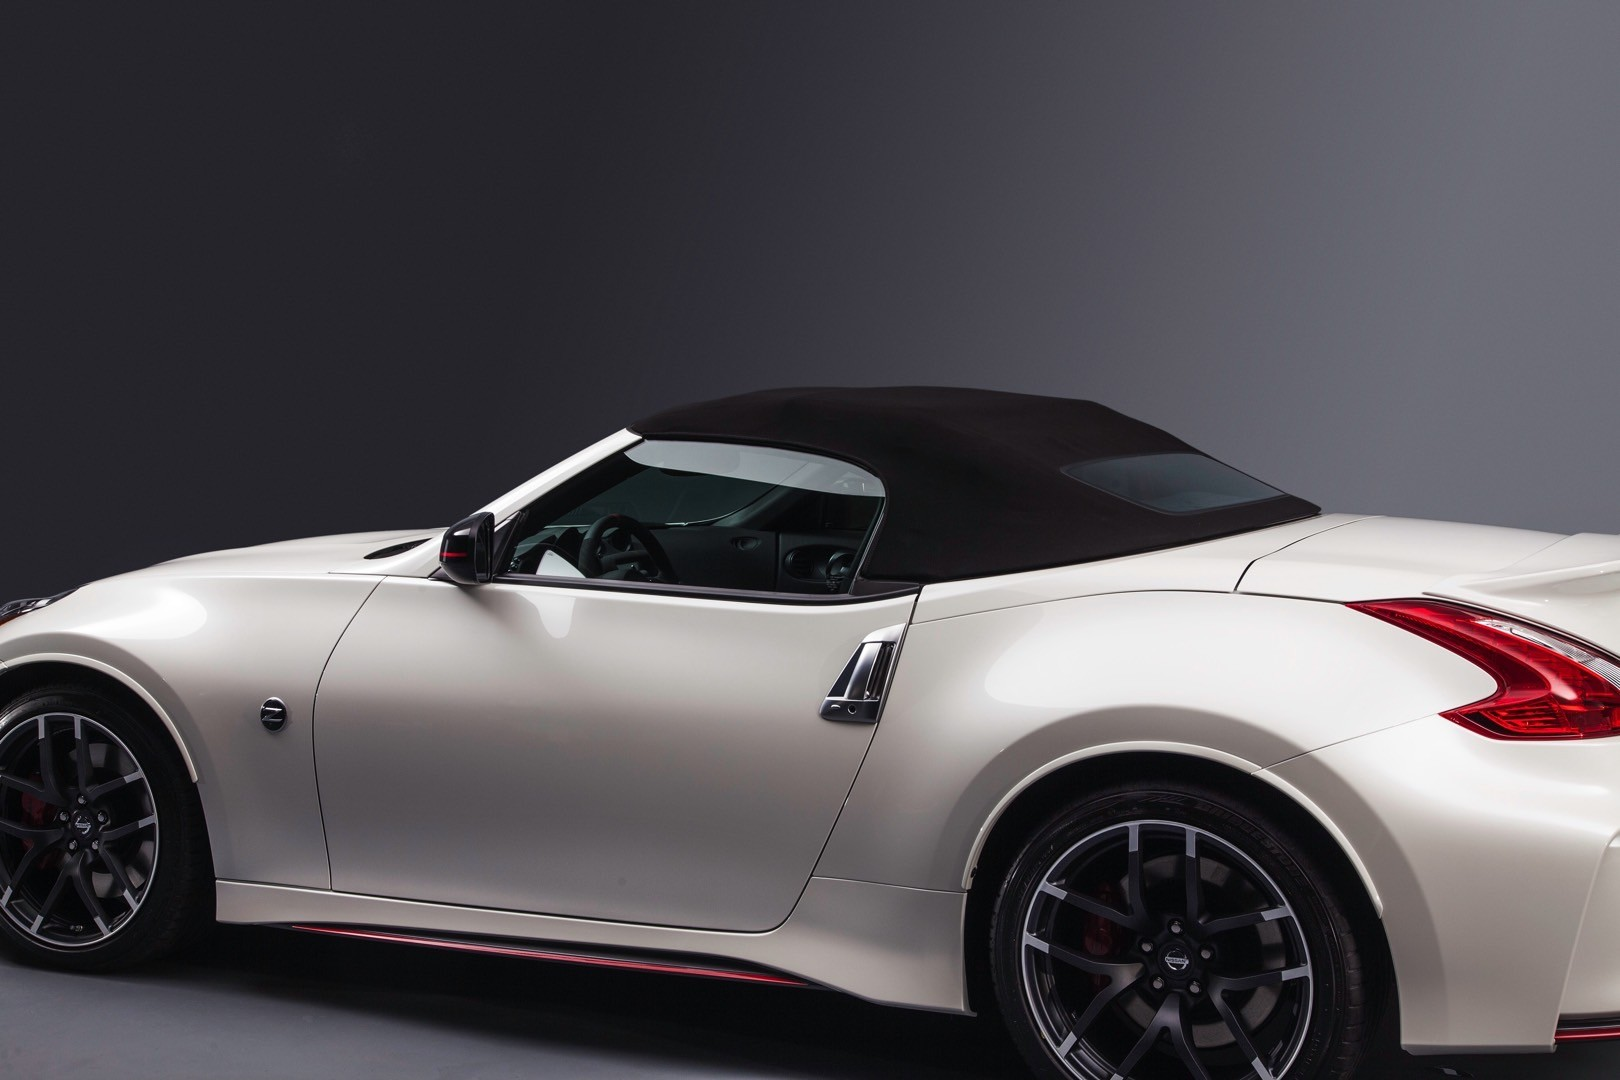 nissan 370z nismo roadster concept launched at 2015 chicago auto show autoevolution. Black Bedroom Furniture Sets. Home Design Ideas